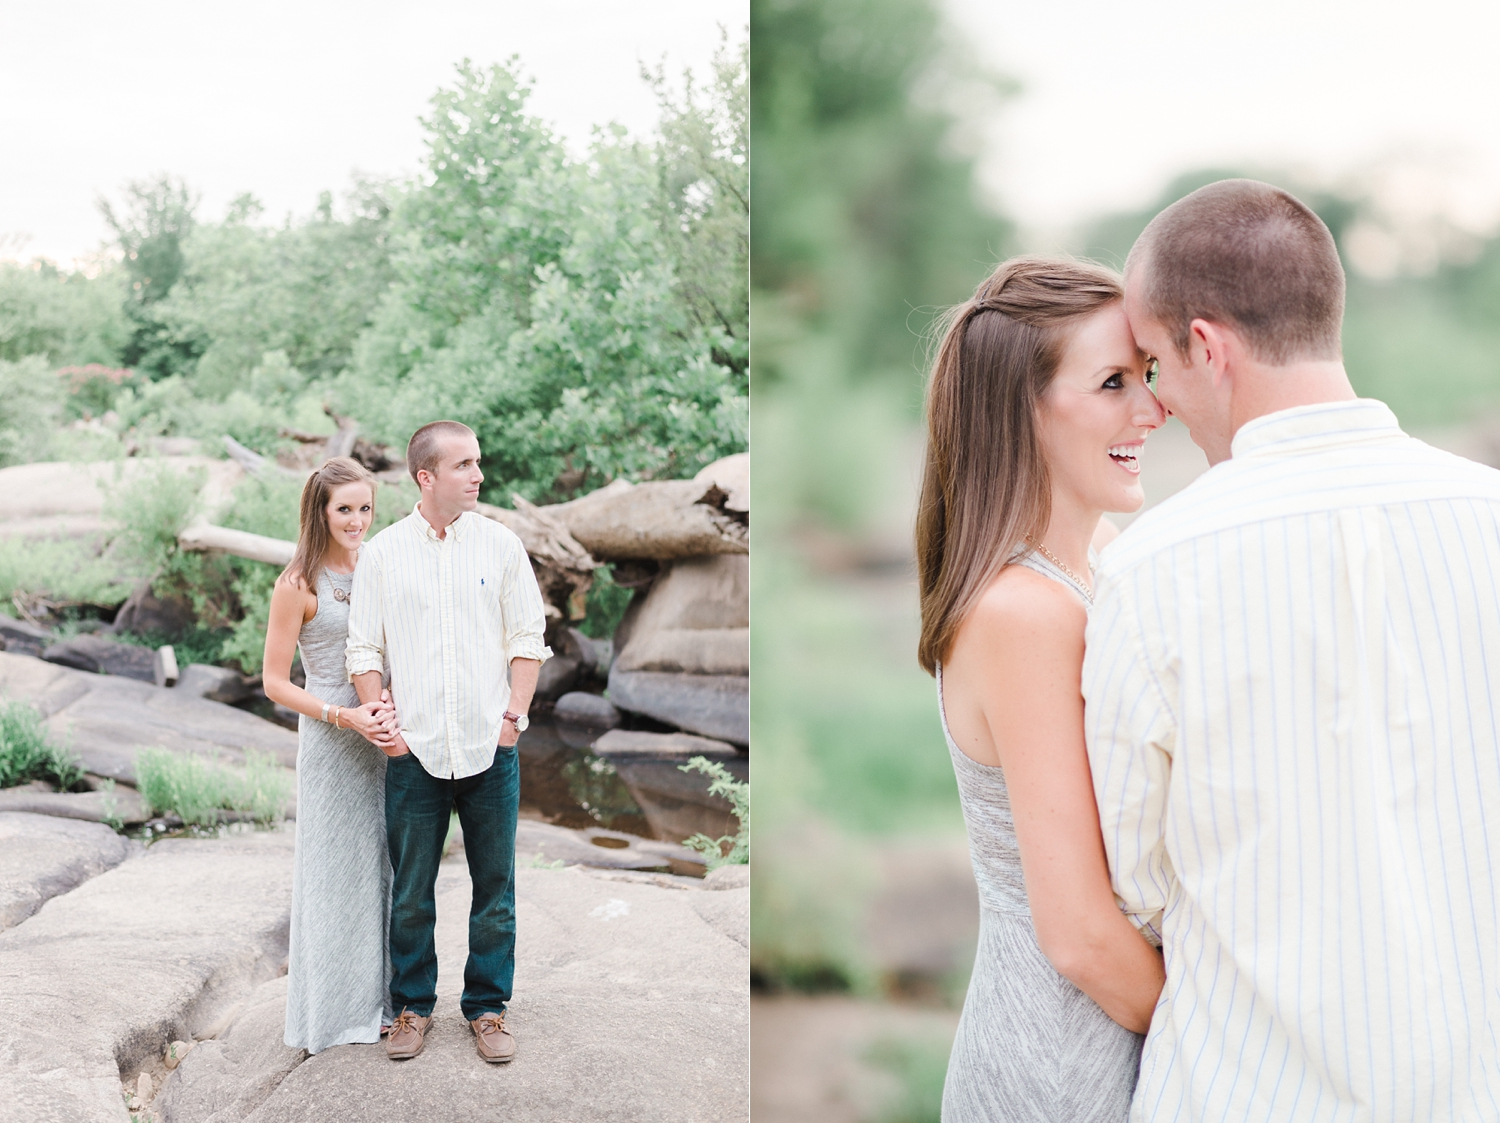 Maymon_Park_richmond_engagement_photography_0025.jpg